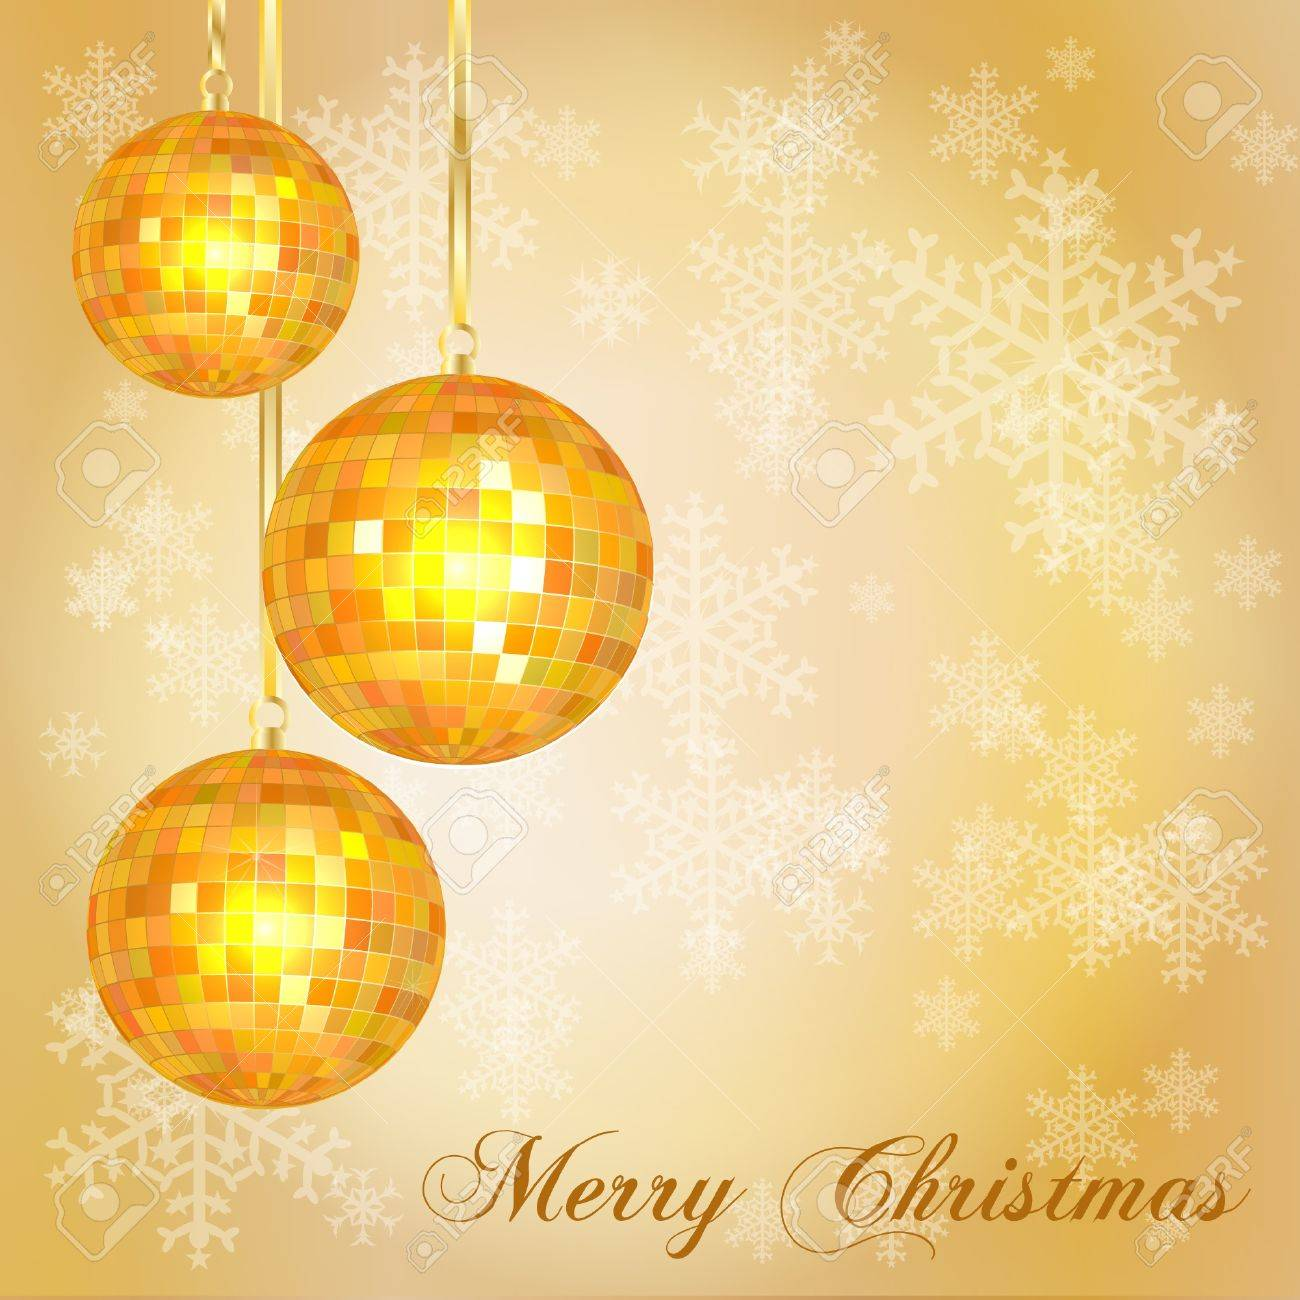 Christmas card template with vintage style disco balls and snowflake background. Space for your text. EPS10 vector format. Stock Vector - 10631690